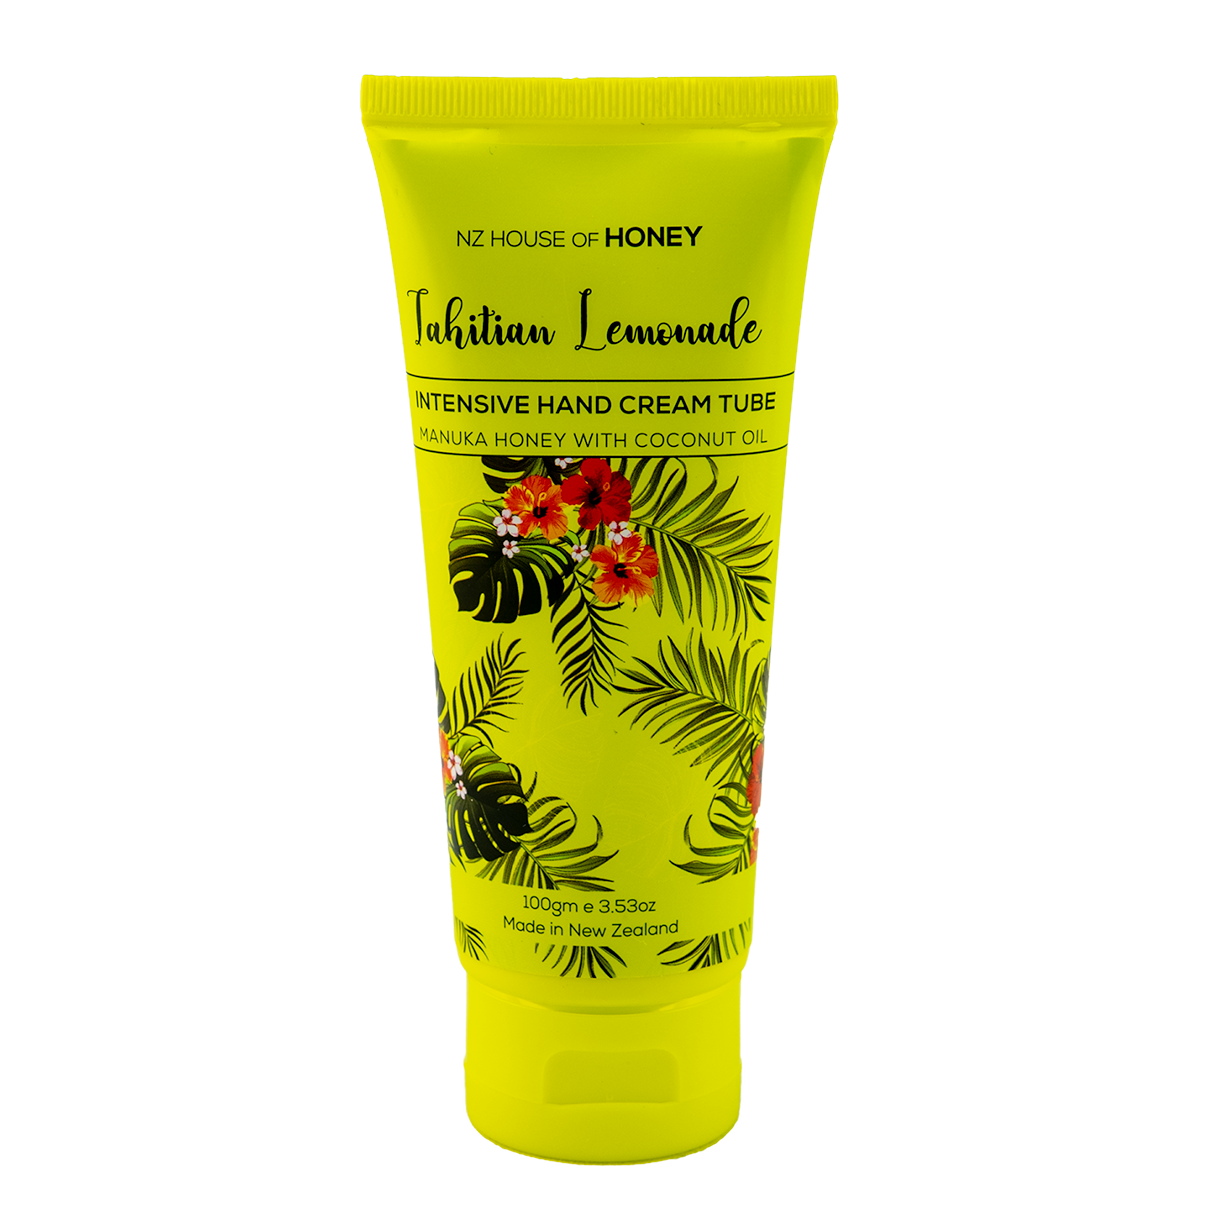 Intensive Hand Cream - Face & Body | NZ House of Honey